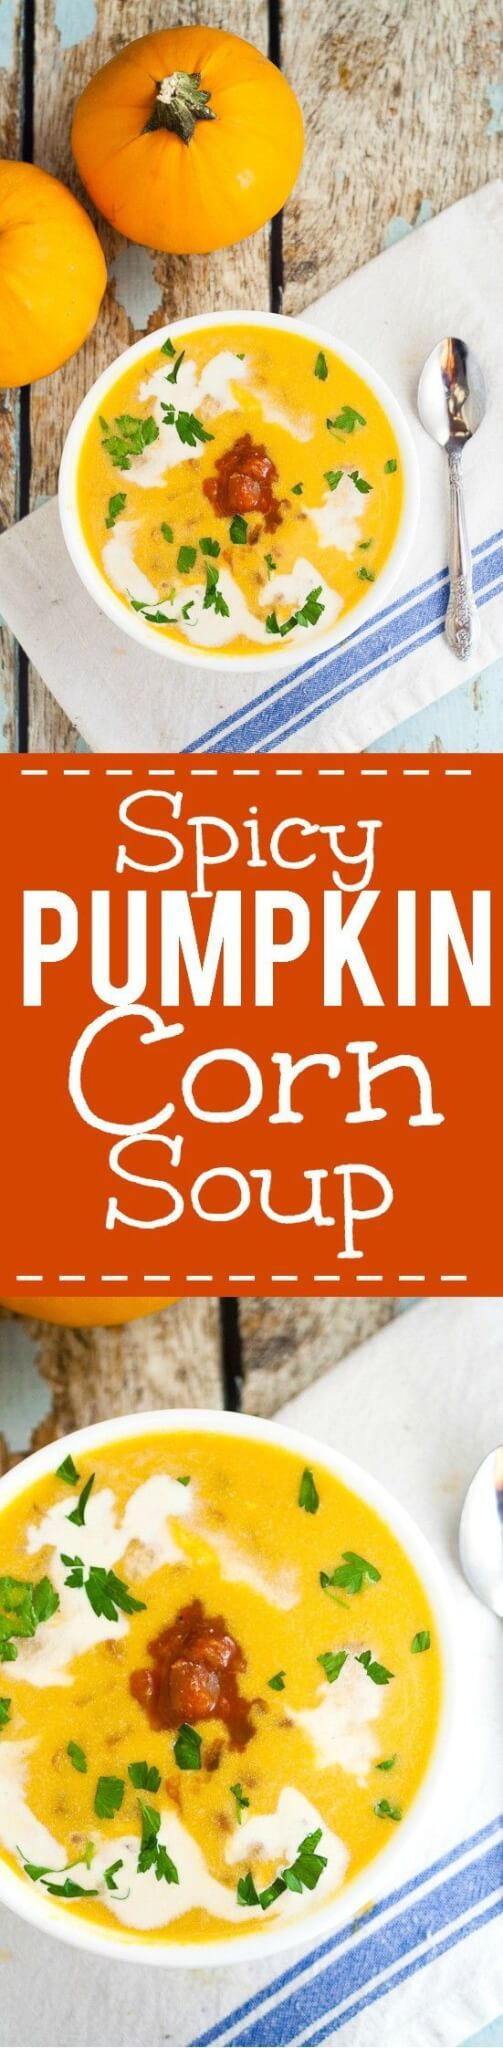 awesome Spicy Southwest Pumpkin Soup recipe